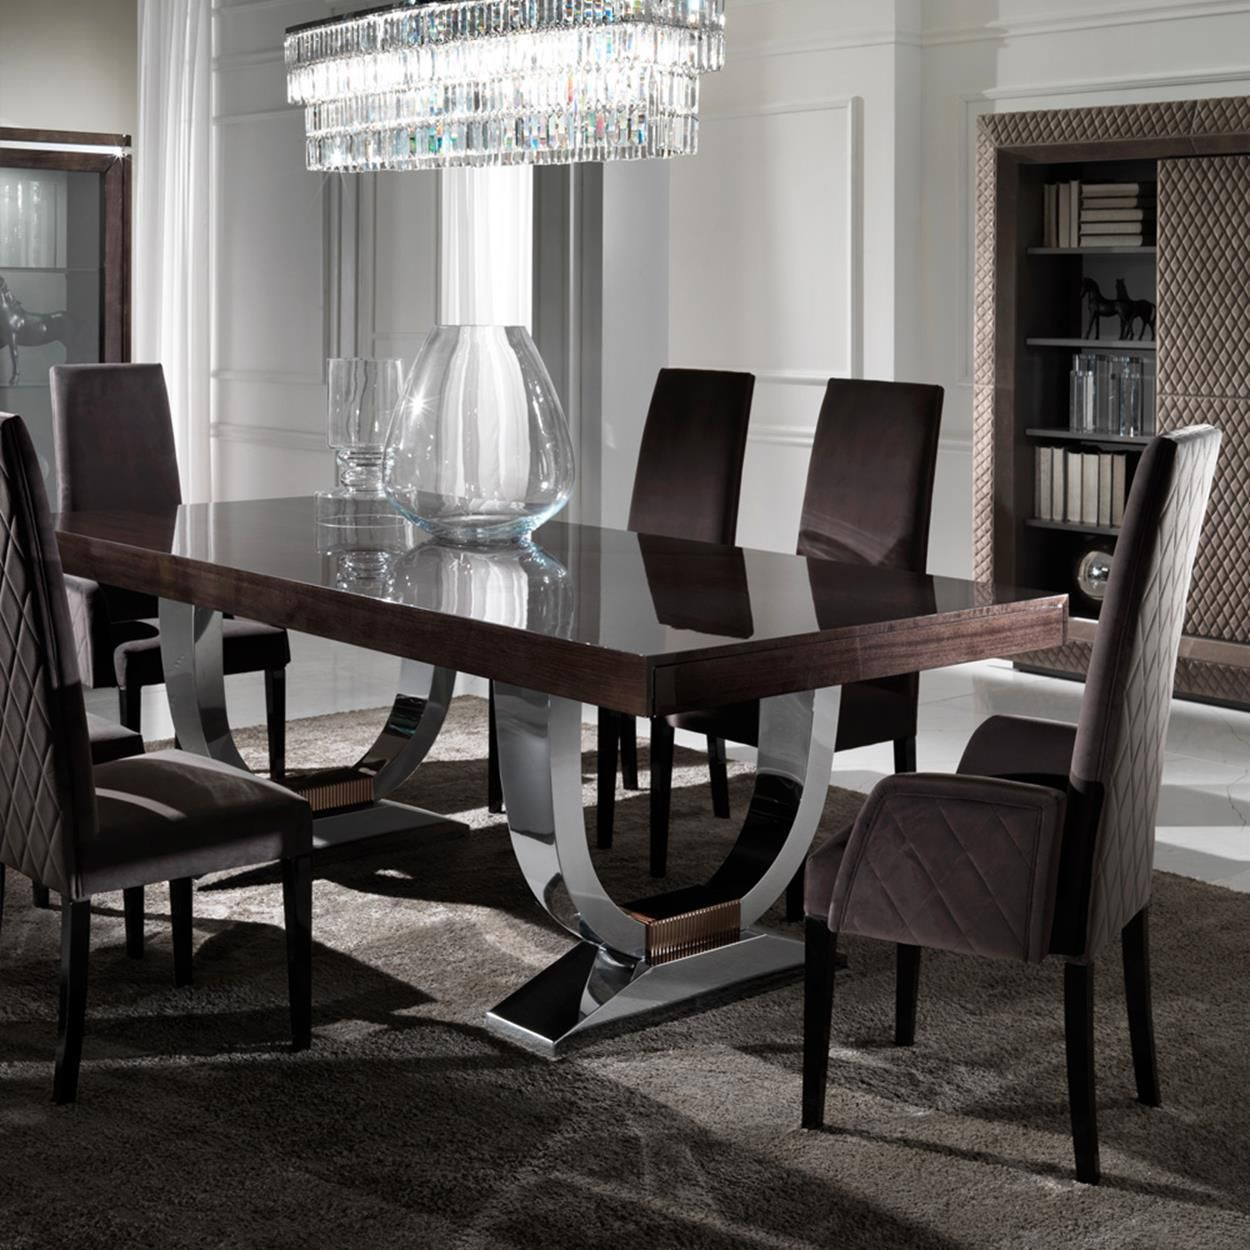 126 Custom Luxury Dining Room Interior Designs: 43 Luxury Modern Italian Dining Room Sets Ideas